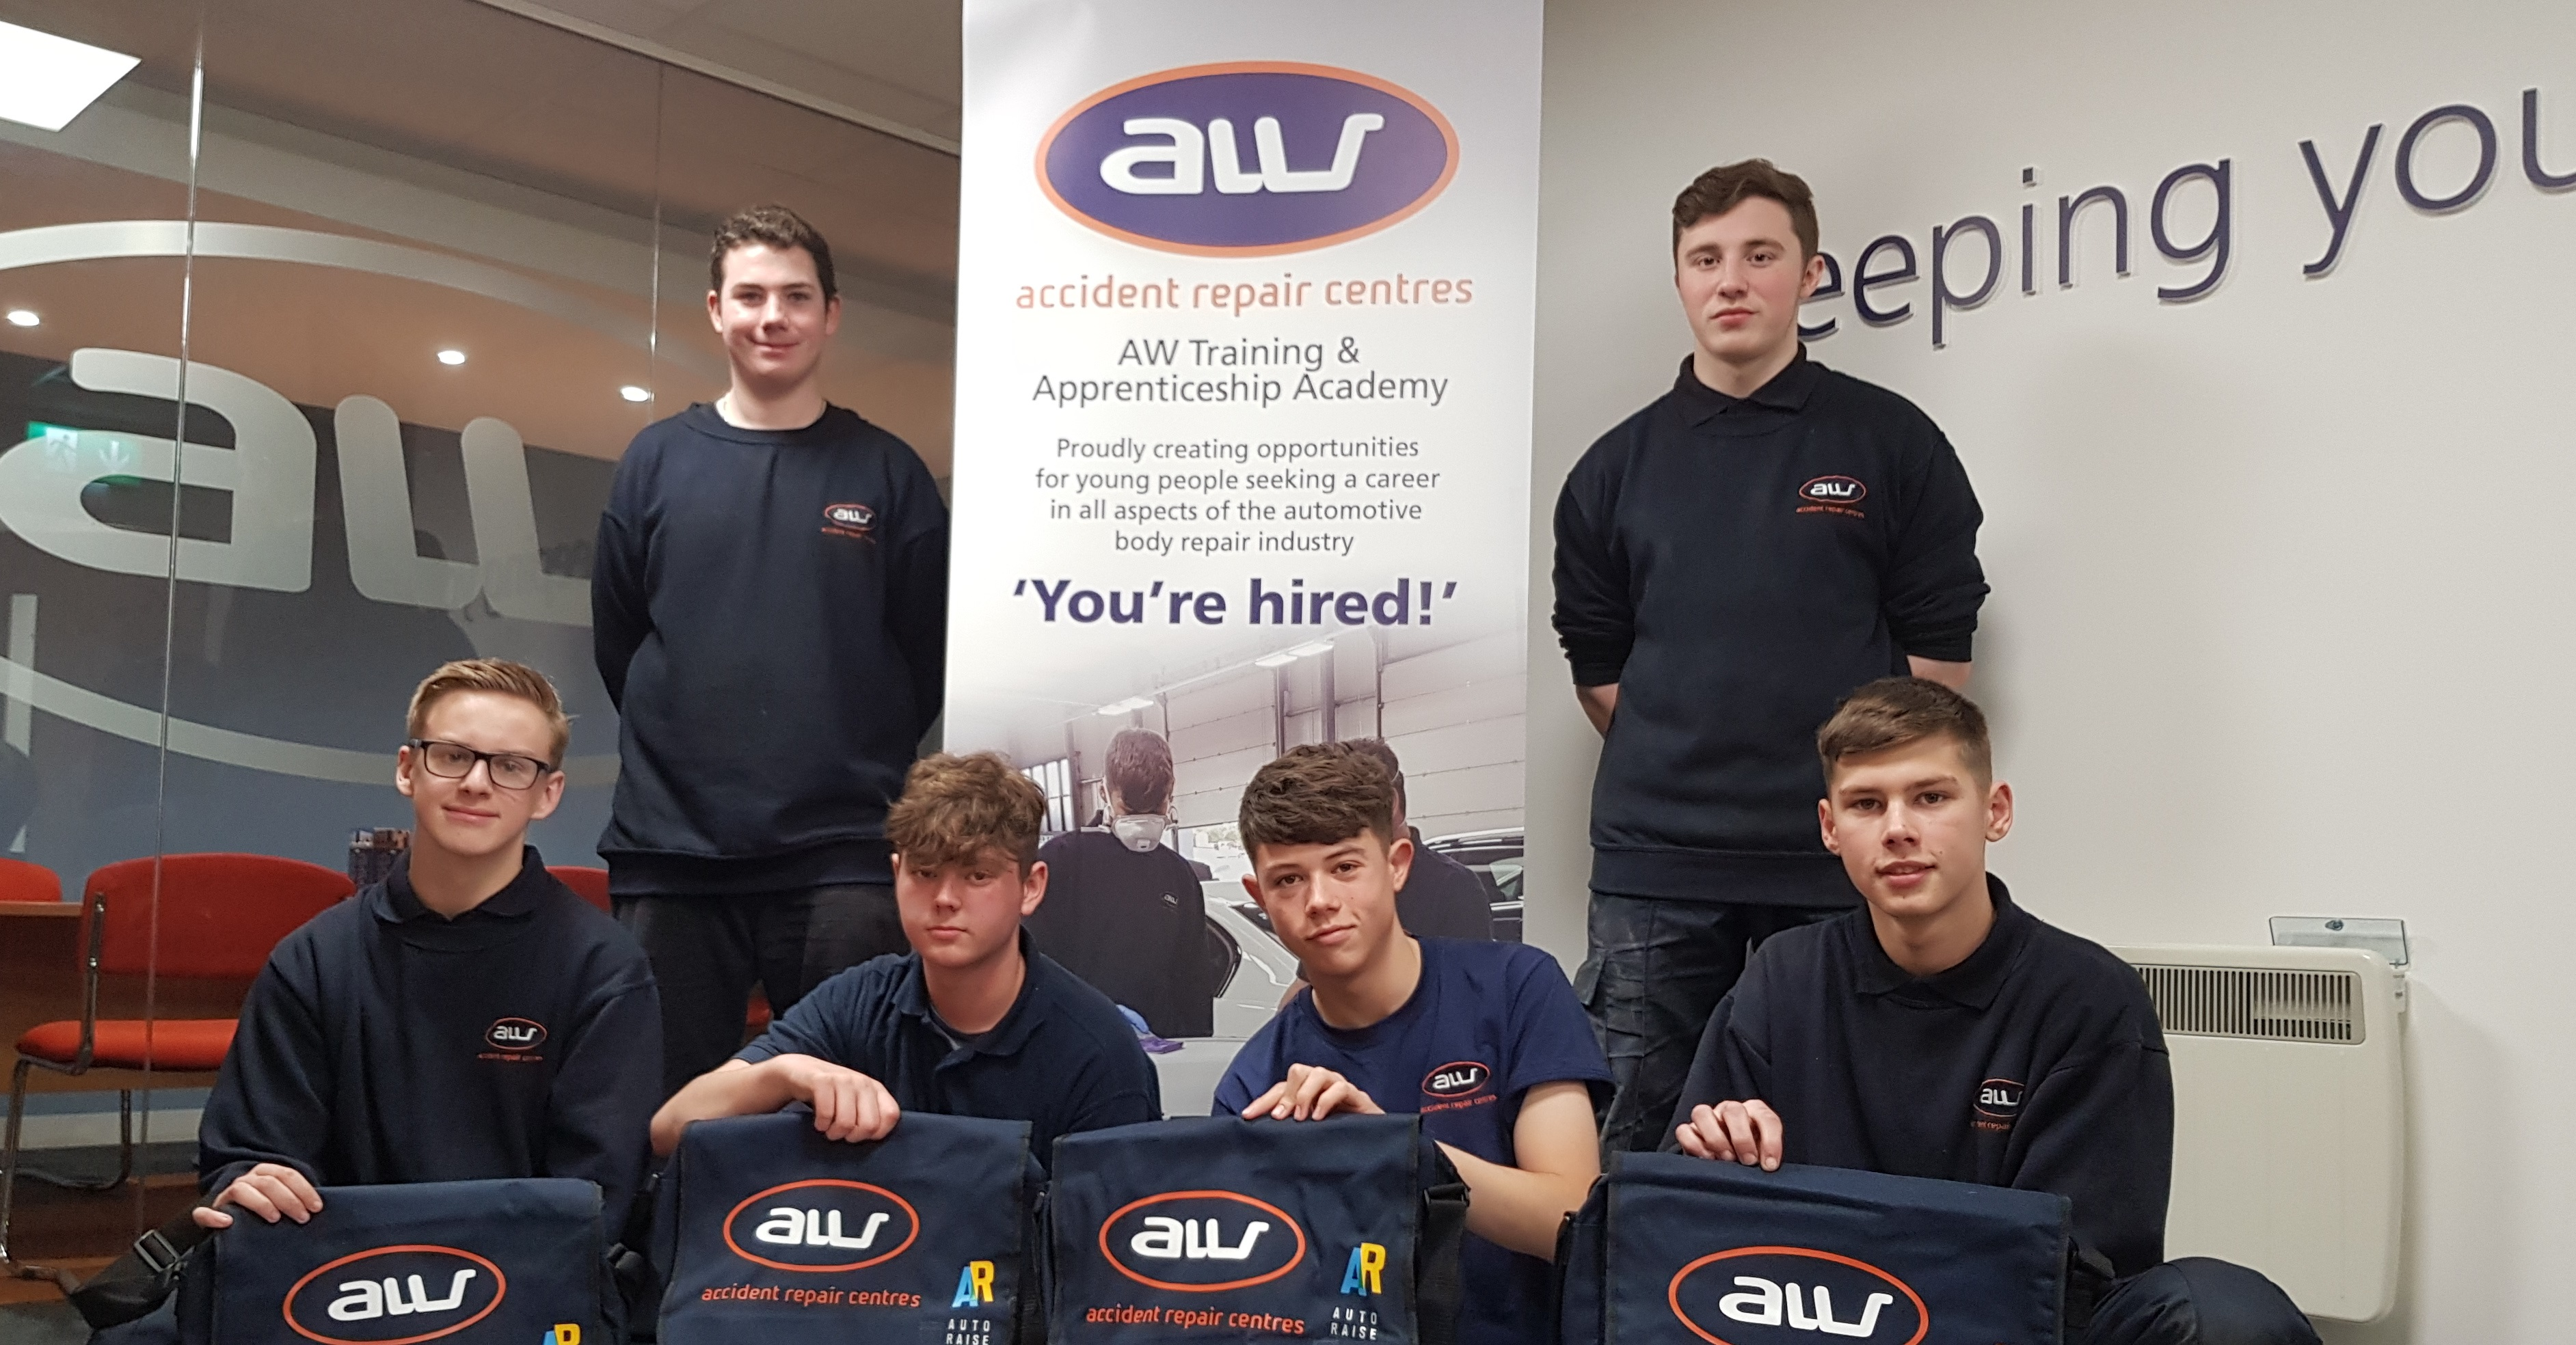 AW Support National Apprenticeship Week